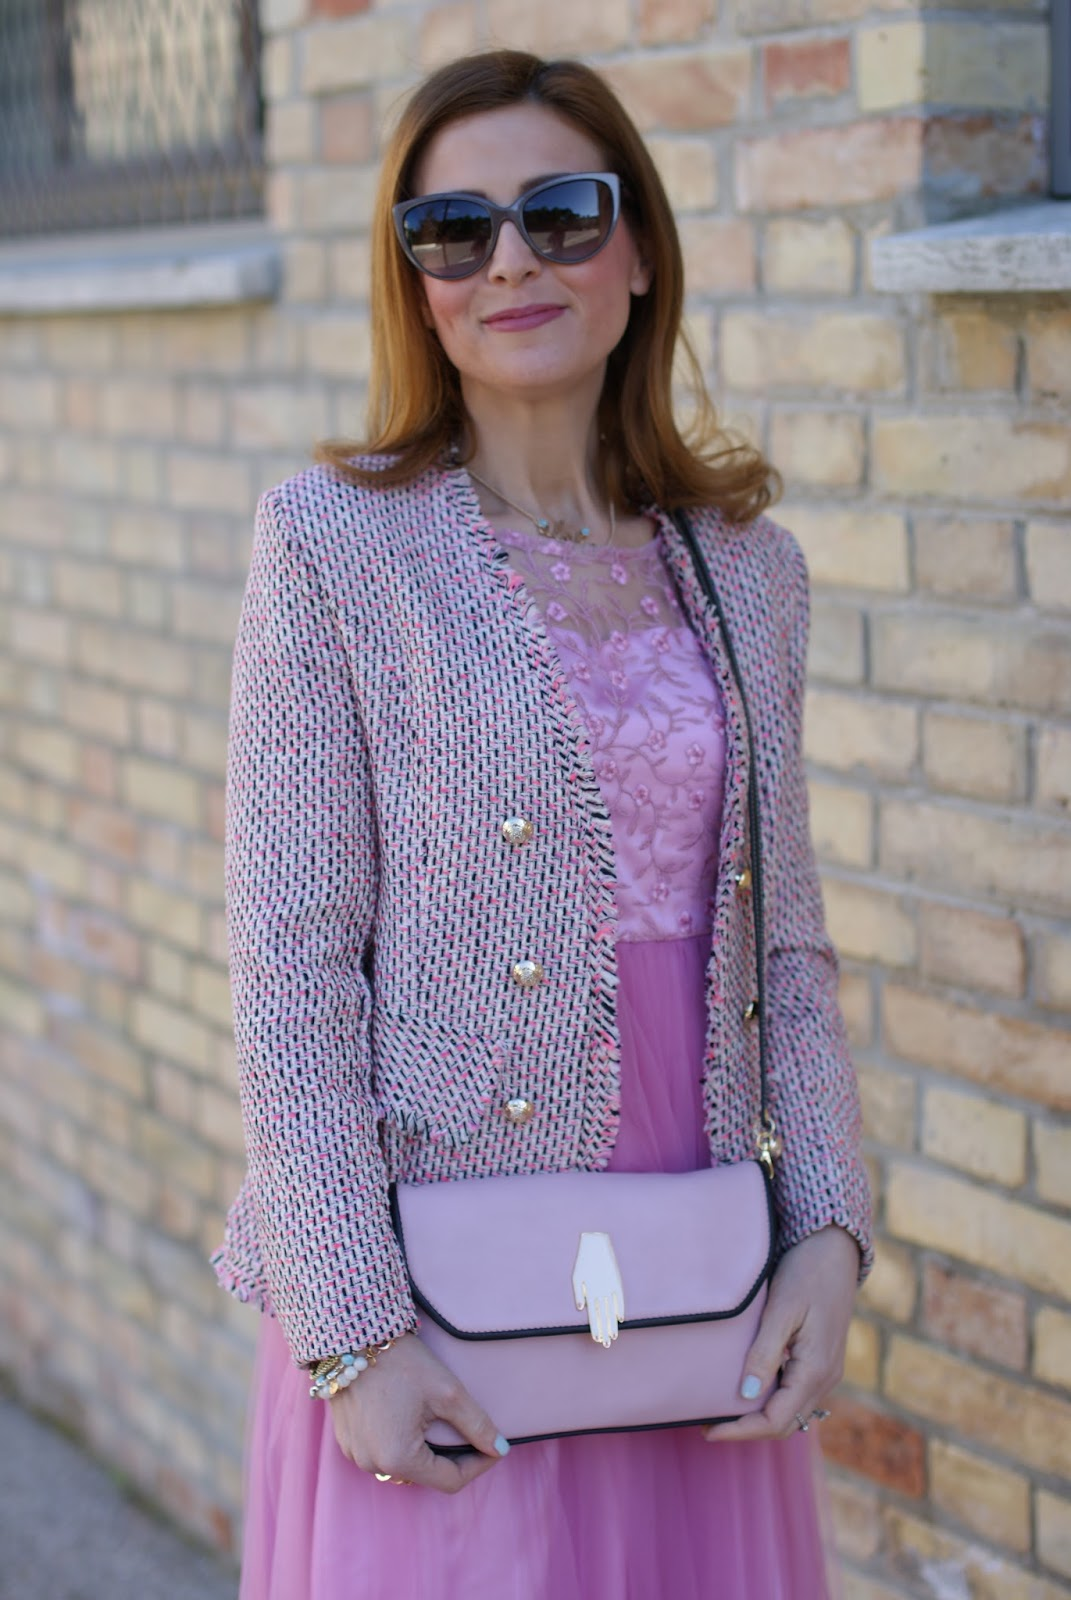 Chanel inspired jacket on a pink midi tulle dress for a romantic outfit on Fashion and Cookies fashion blog, fashion blogger style